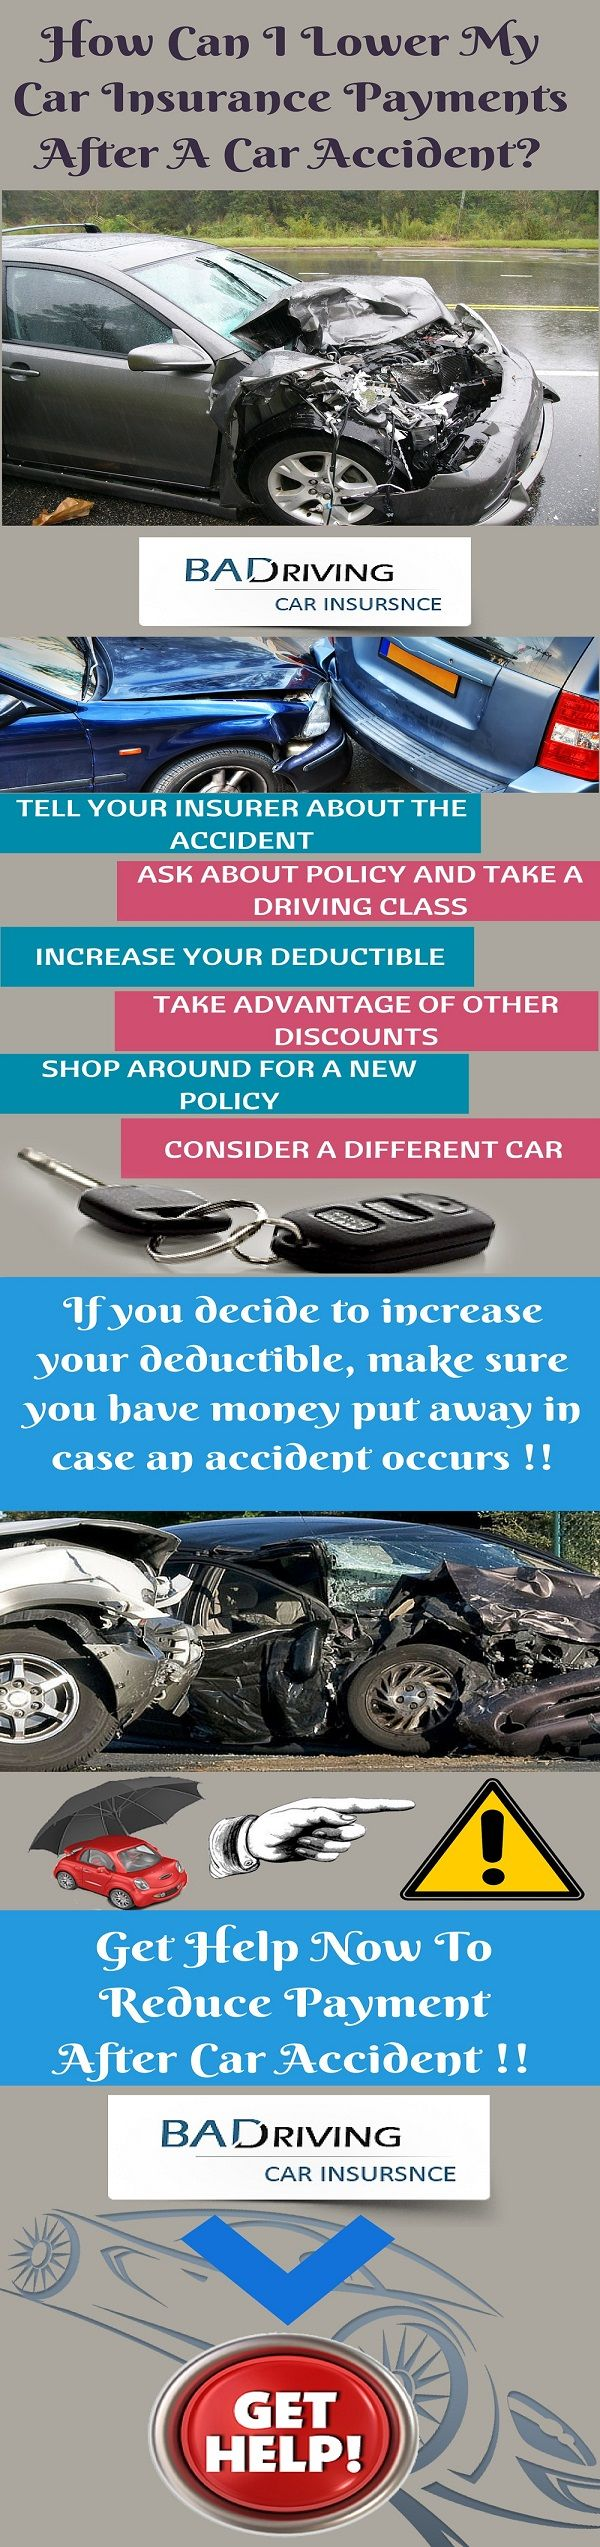 How to lower payment after car accident